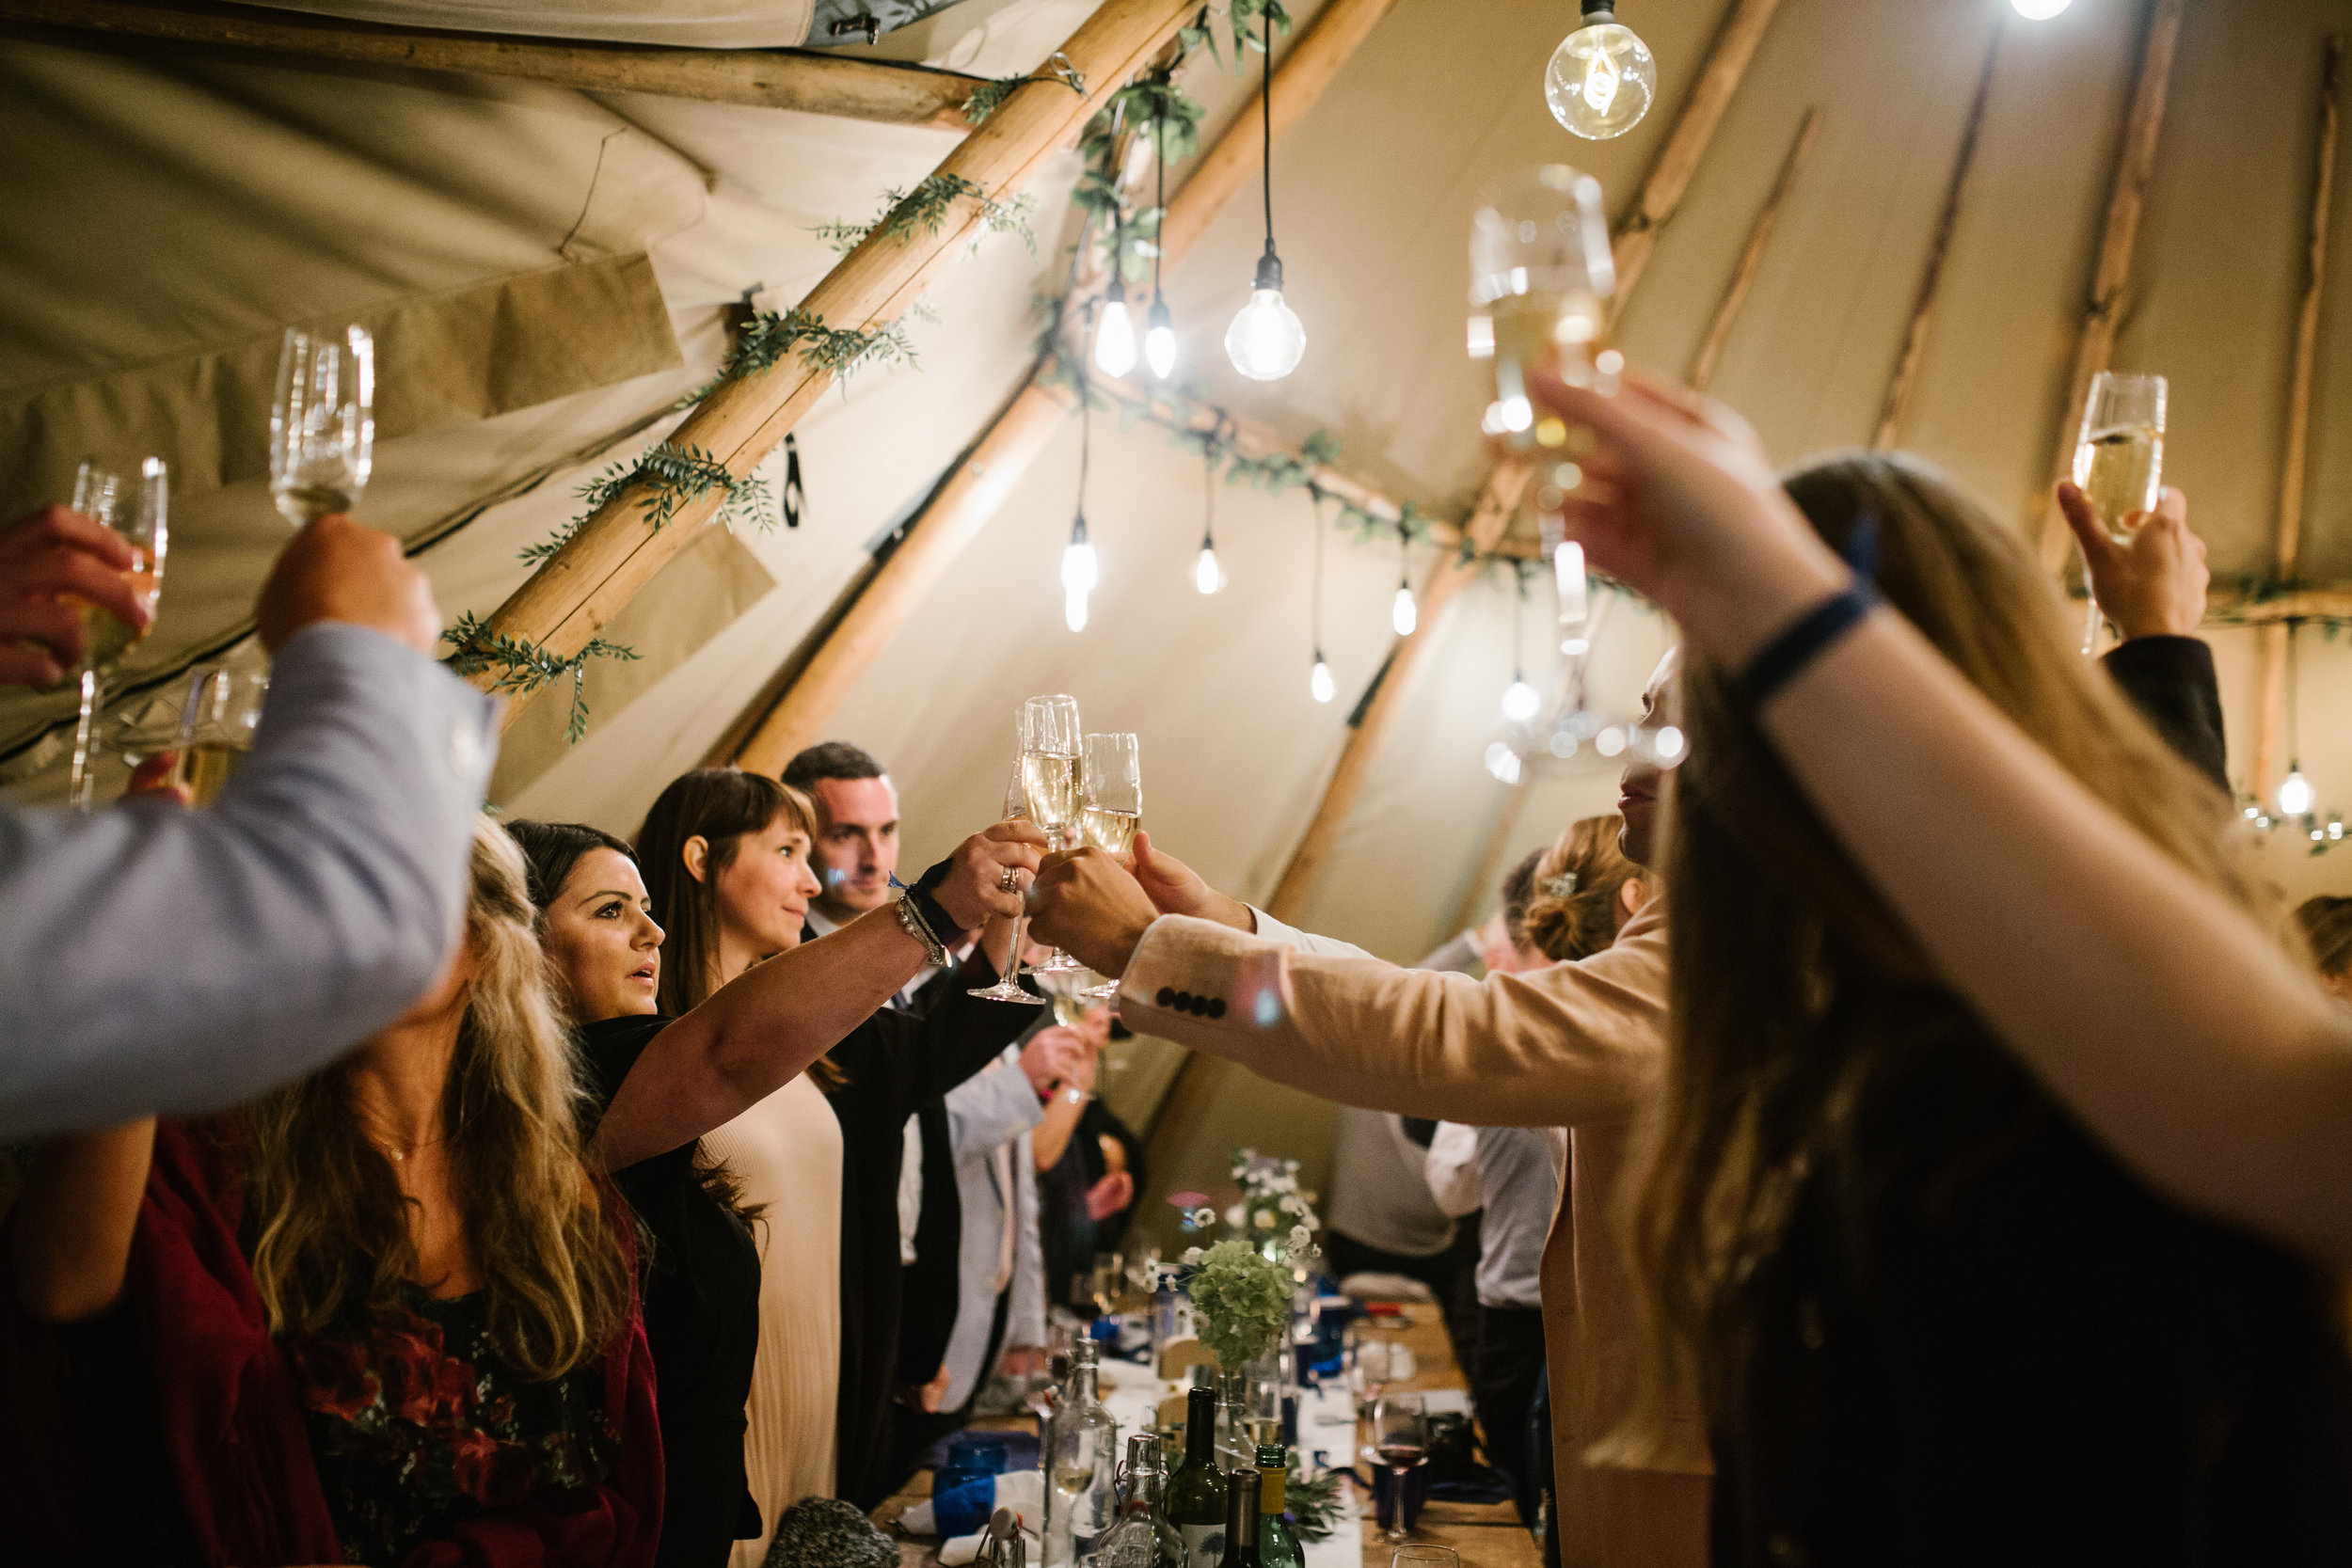 Tipi wedding, teepee wedding, tipi wedding photographer somerset wedding, somerset wedding photographer, cotswolds wedding photographer, DIY wedding, fun wedding, birmingham wedding photographer -445.jpg